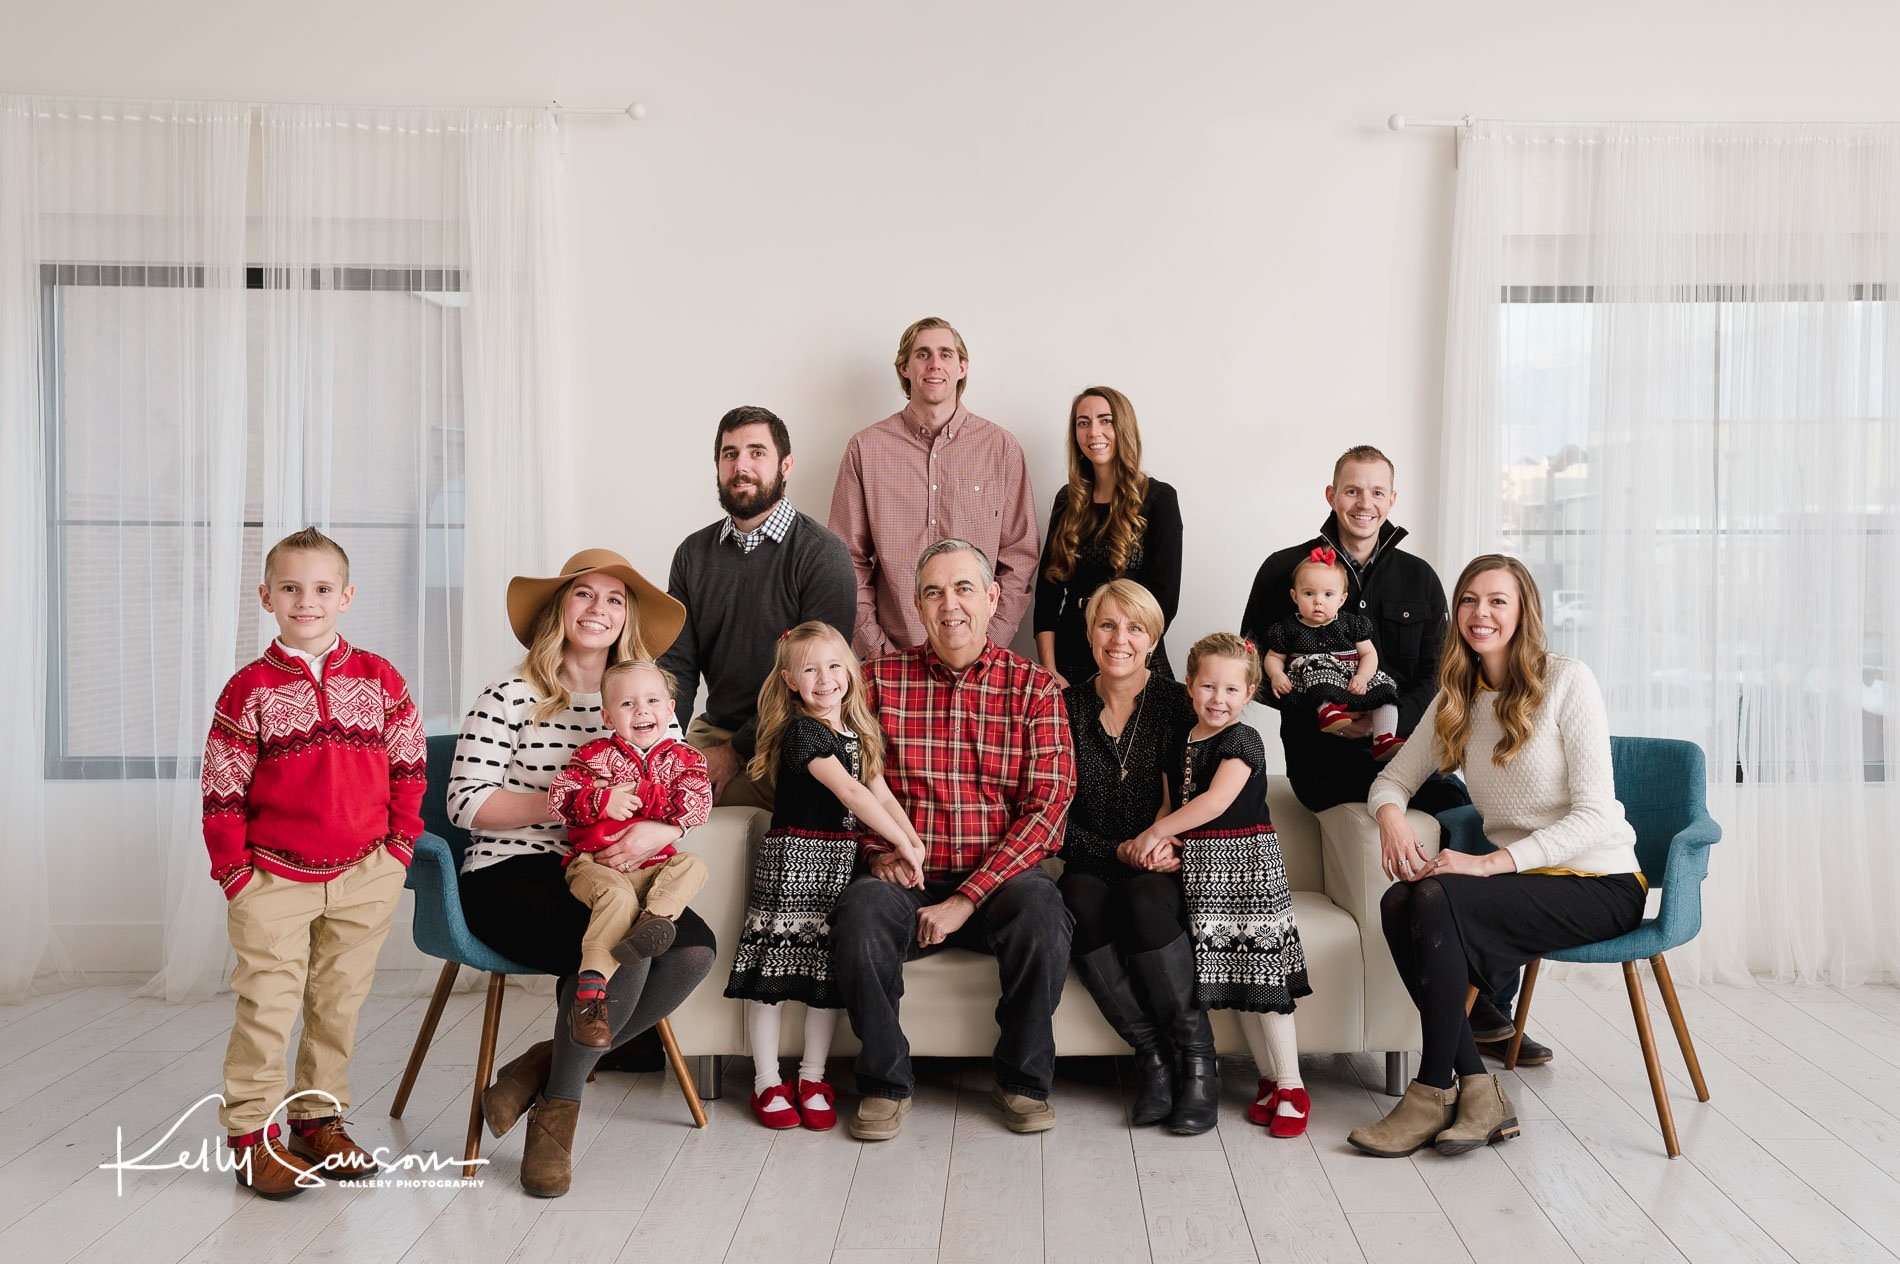 Rogers Family Photography at the White Space Studio